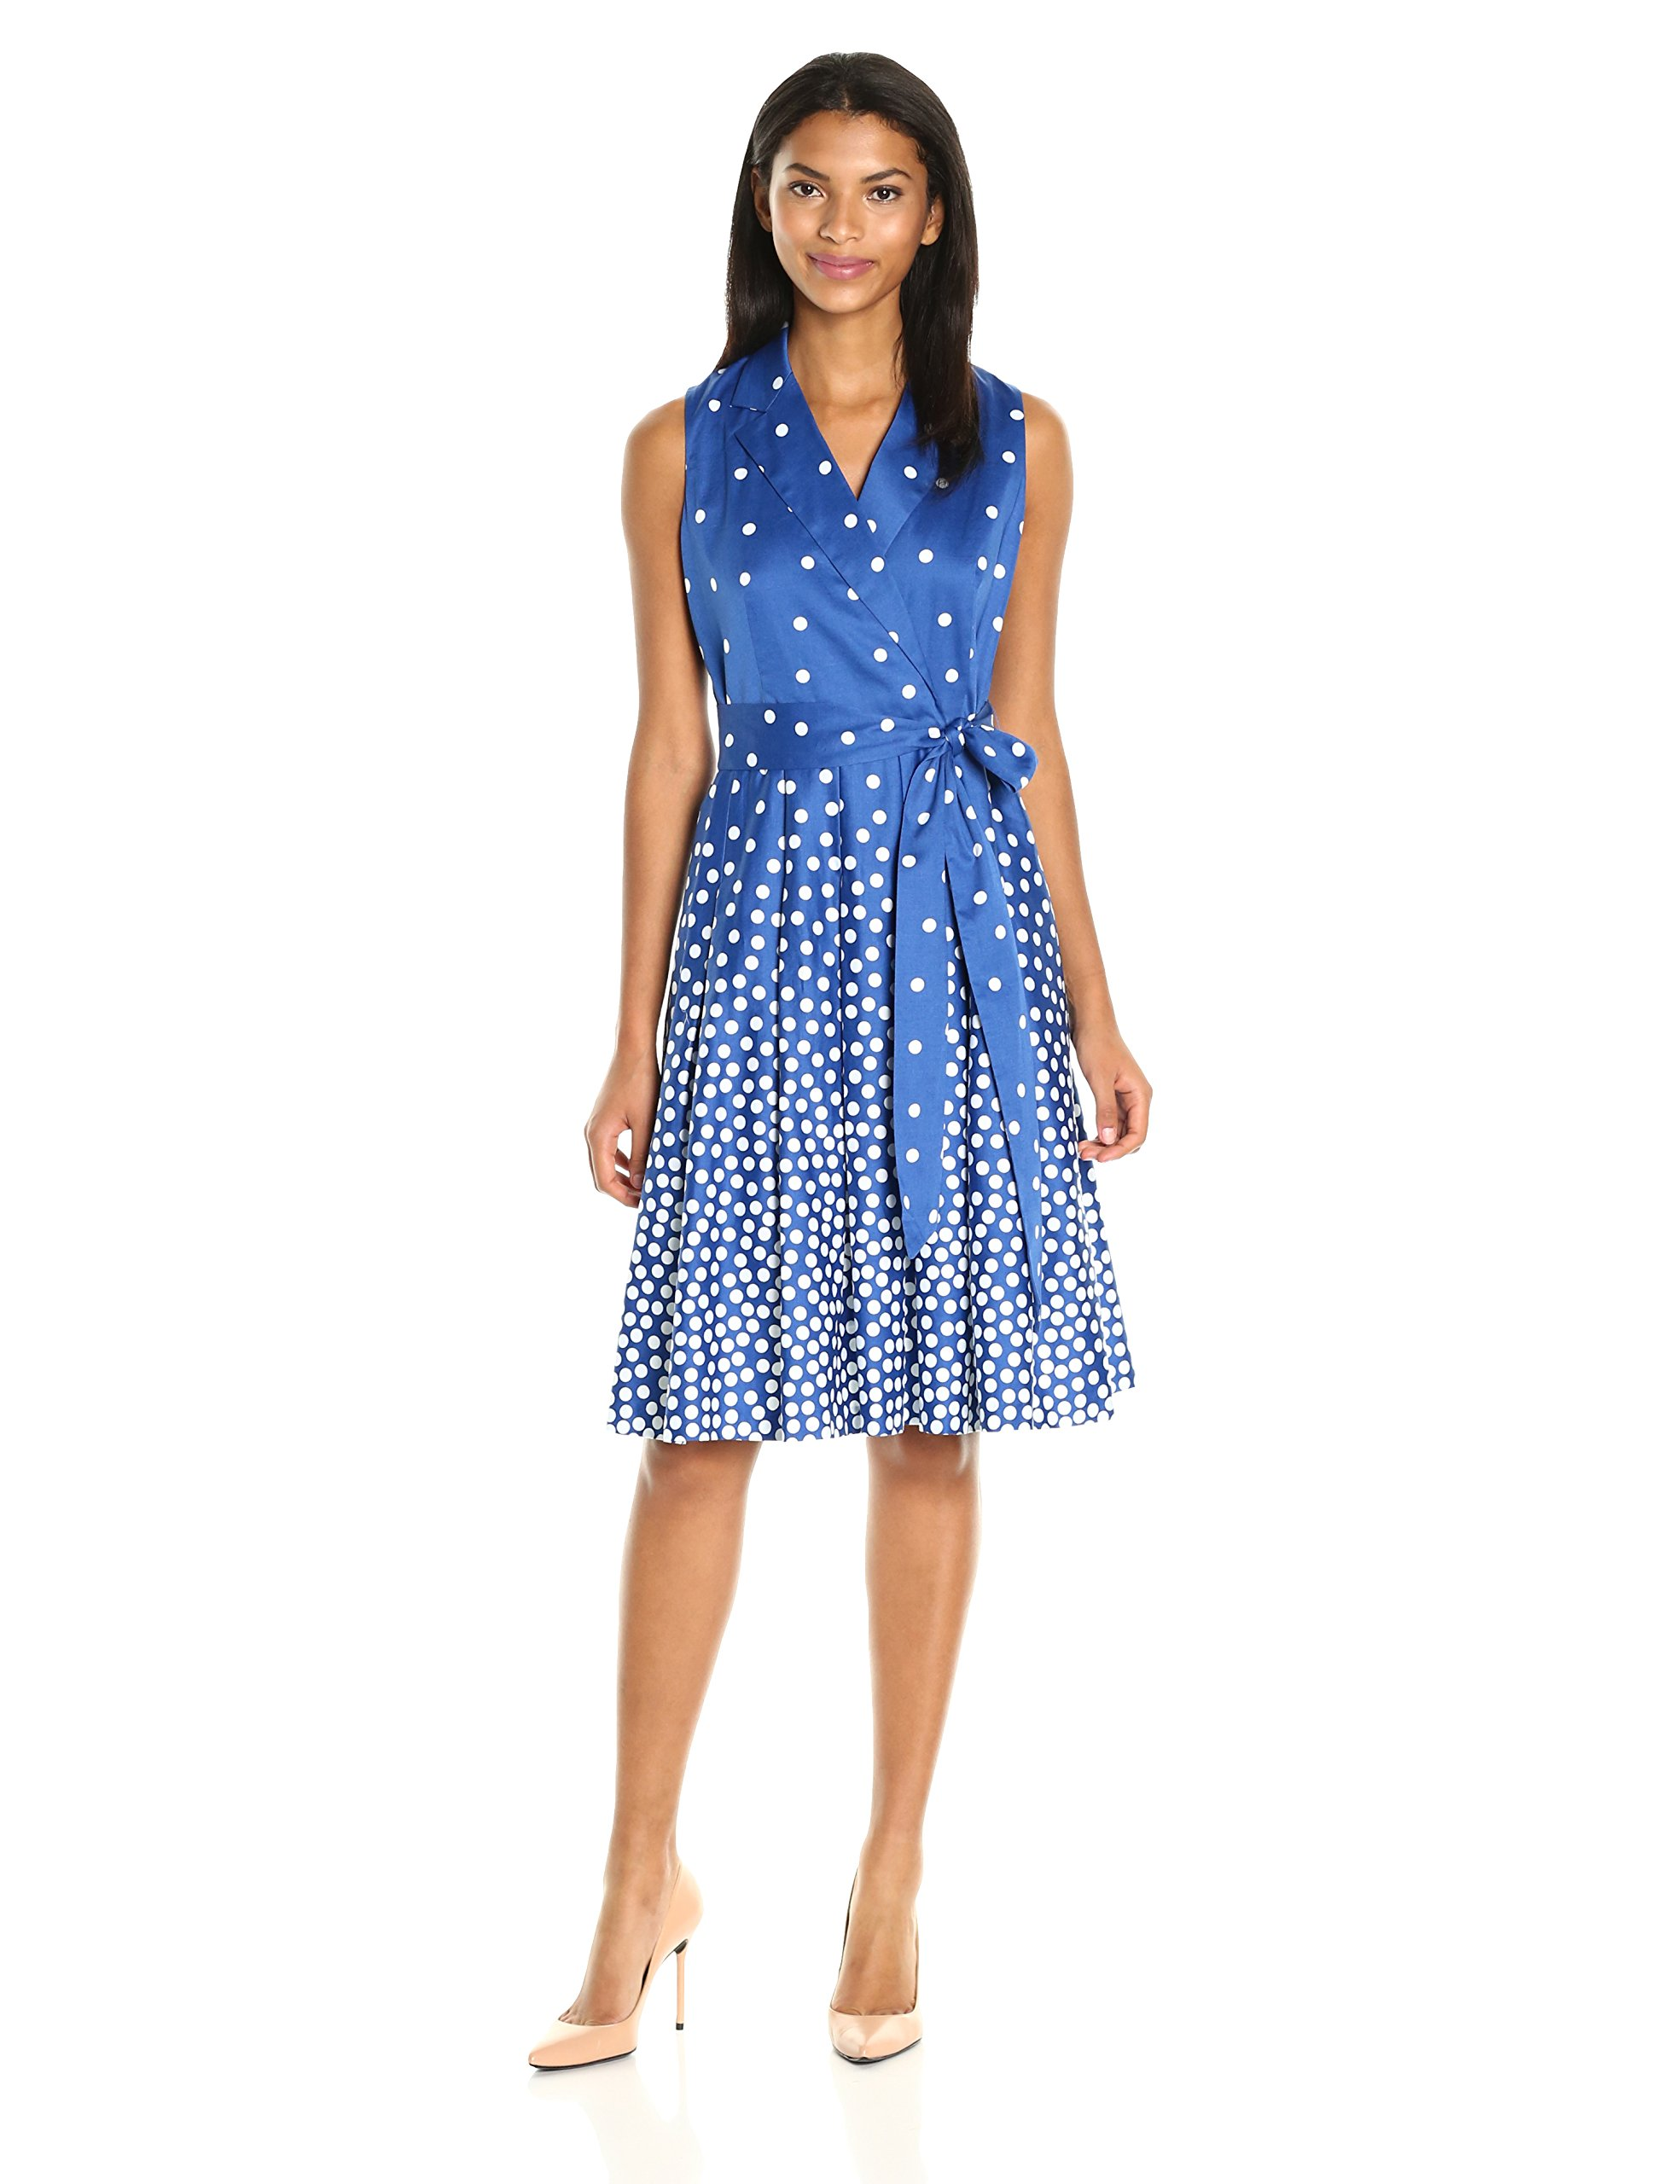 Anne Klein Women's Notch Collar Dot Print Self Belted Wrap Dress, Bluebell/Optic White, 6